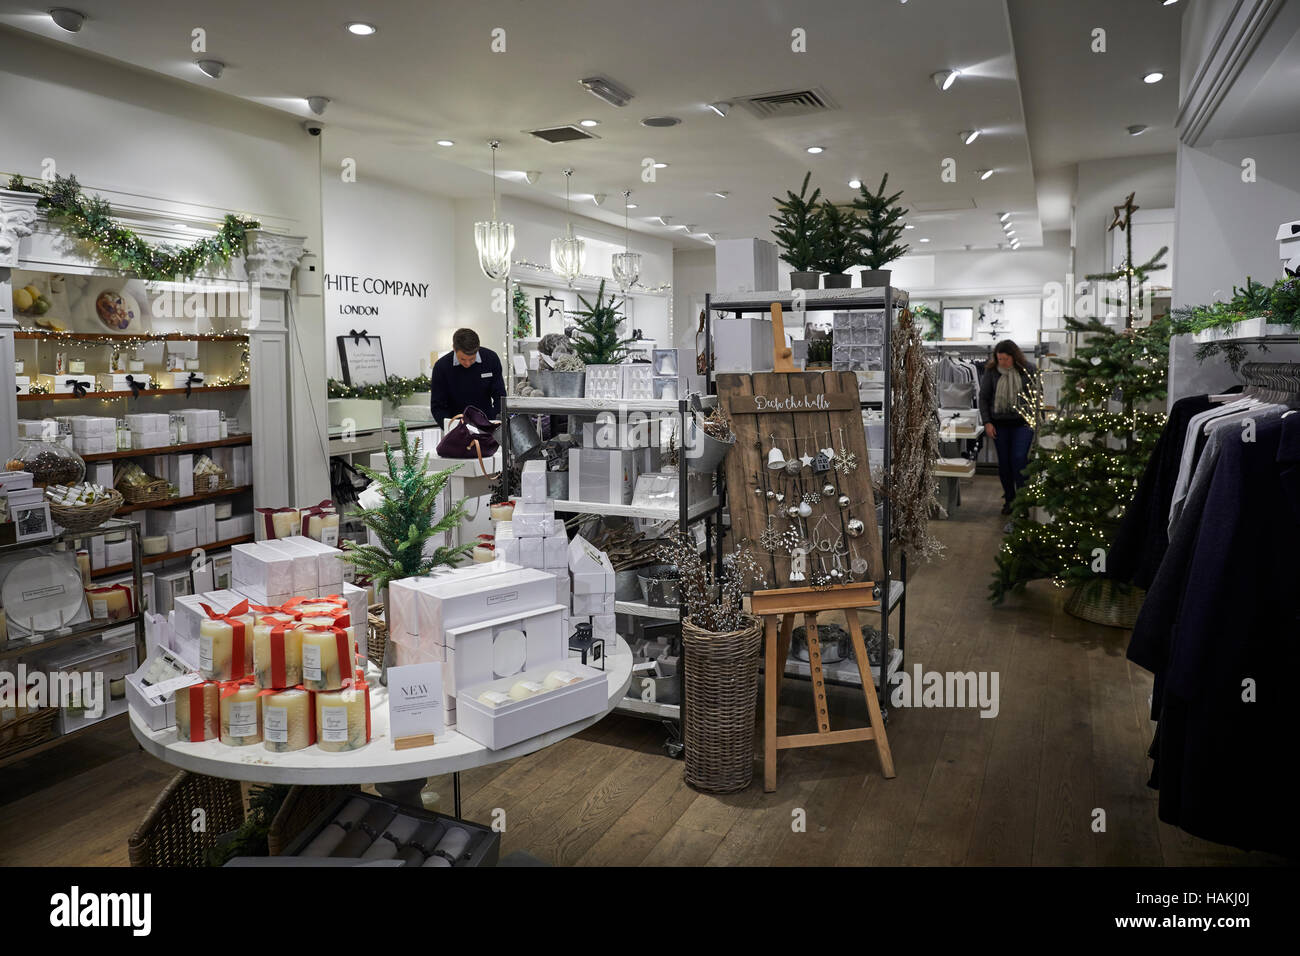 Manchester White Companyl King Street   Interior shop retail store outlet   Quality deluxe luxury posh well hi-class - Stock Image